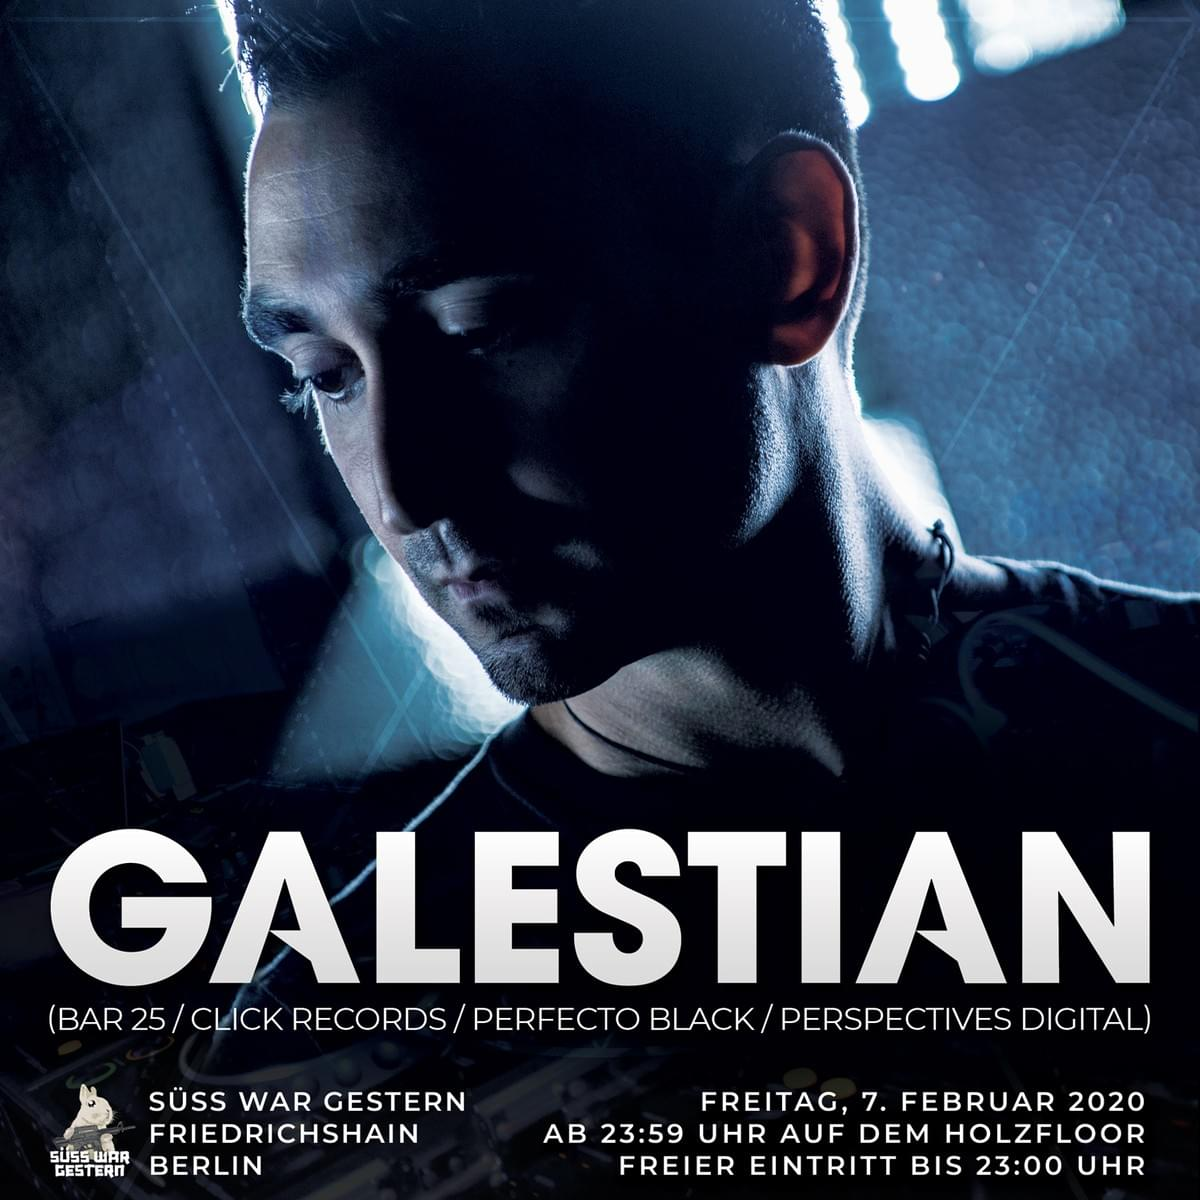 Galestian - Live at Süss War Gestern, Berlin (7-hour set) - 7 Feb 2020